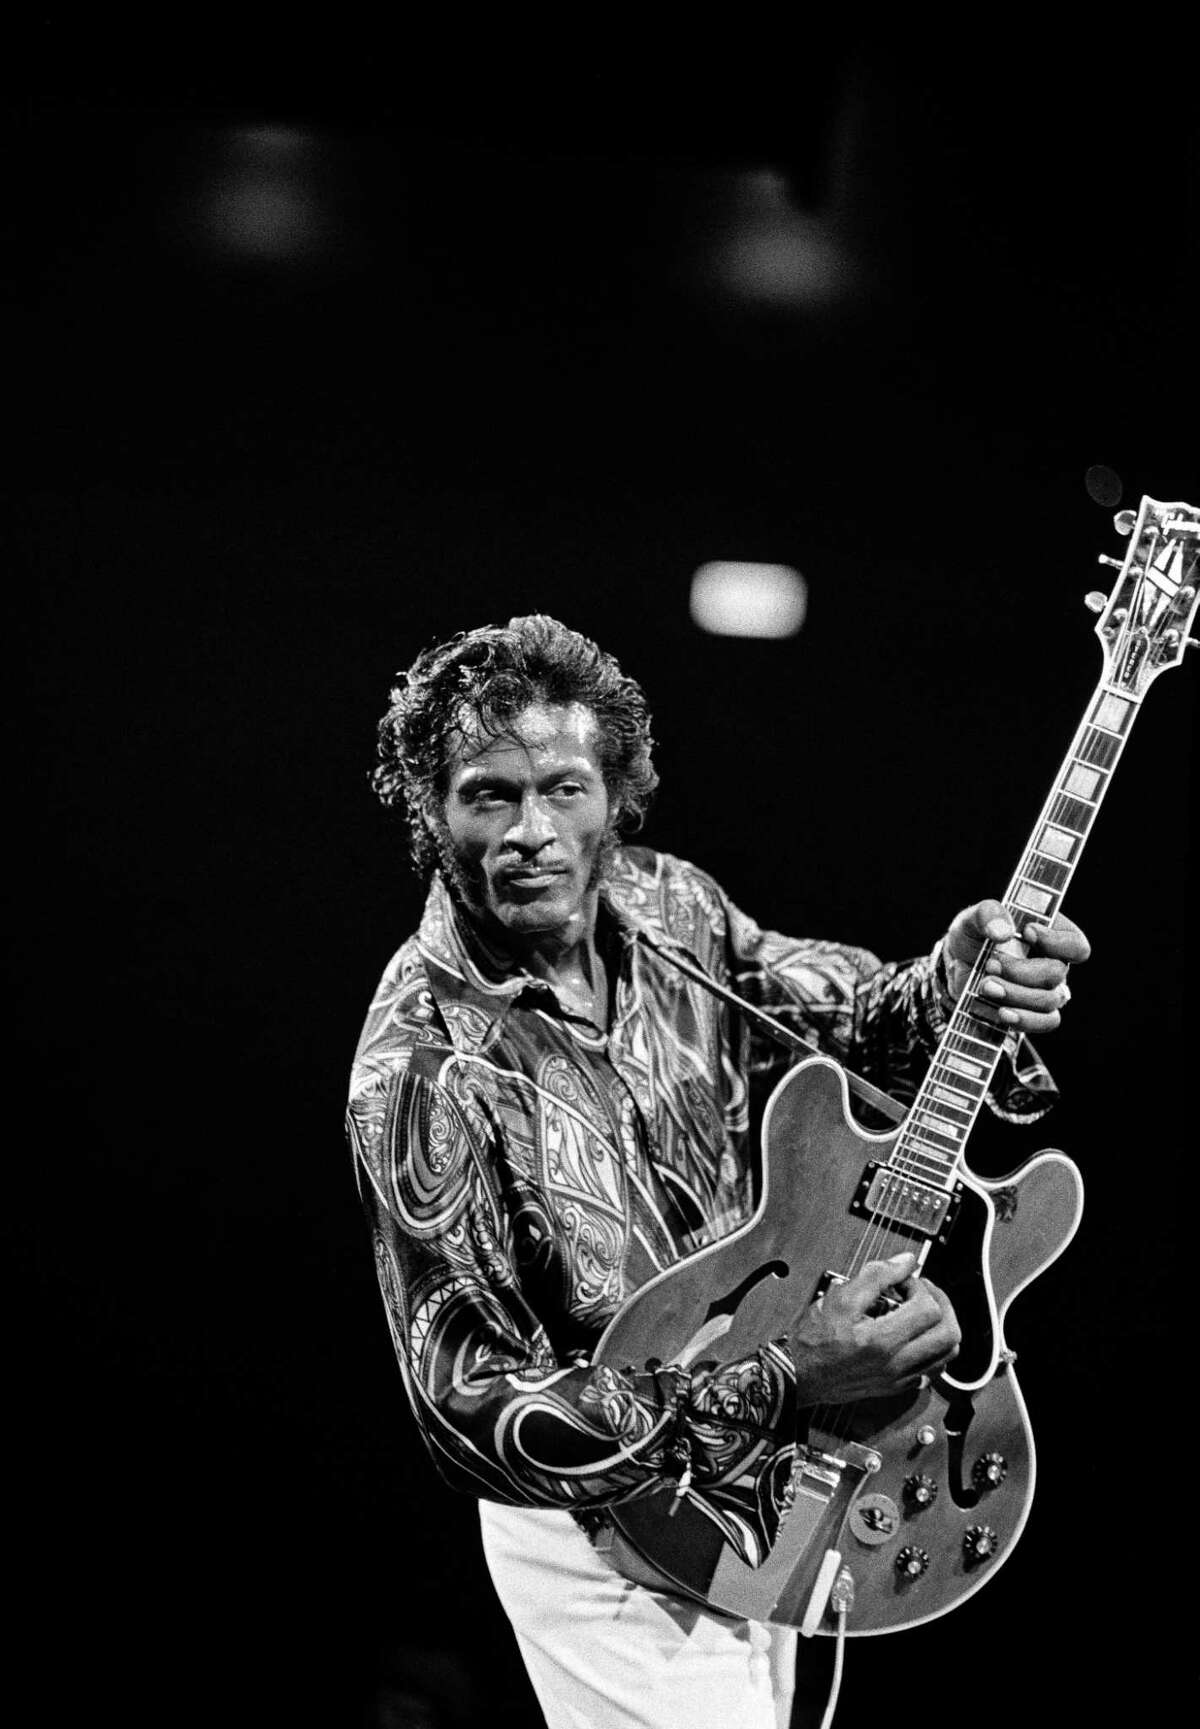 FILE -- Chuck Berry, who with his indelible guitar licks, brash self-confidence and memorable songs about cars, girls and wild dance parties did as much as anyone to define rock OnO rollOs potential and attitude in its early years, died on Saturday, March 18, 2017. He was 90. Berry in concert in New York in 1971. (Donal F. Holway/The New York Times) -- PART OF A COLLECTION OF STAND-ALONE PHOTOS FOR USE AS DESIRED IN YEAREND STORIES AND RECAPS OF 2017 -- ORG XMIT: NYT03